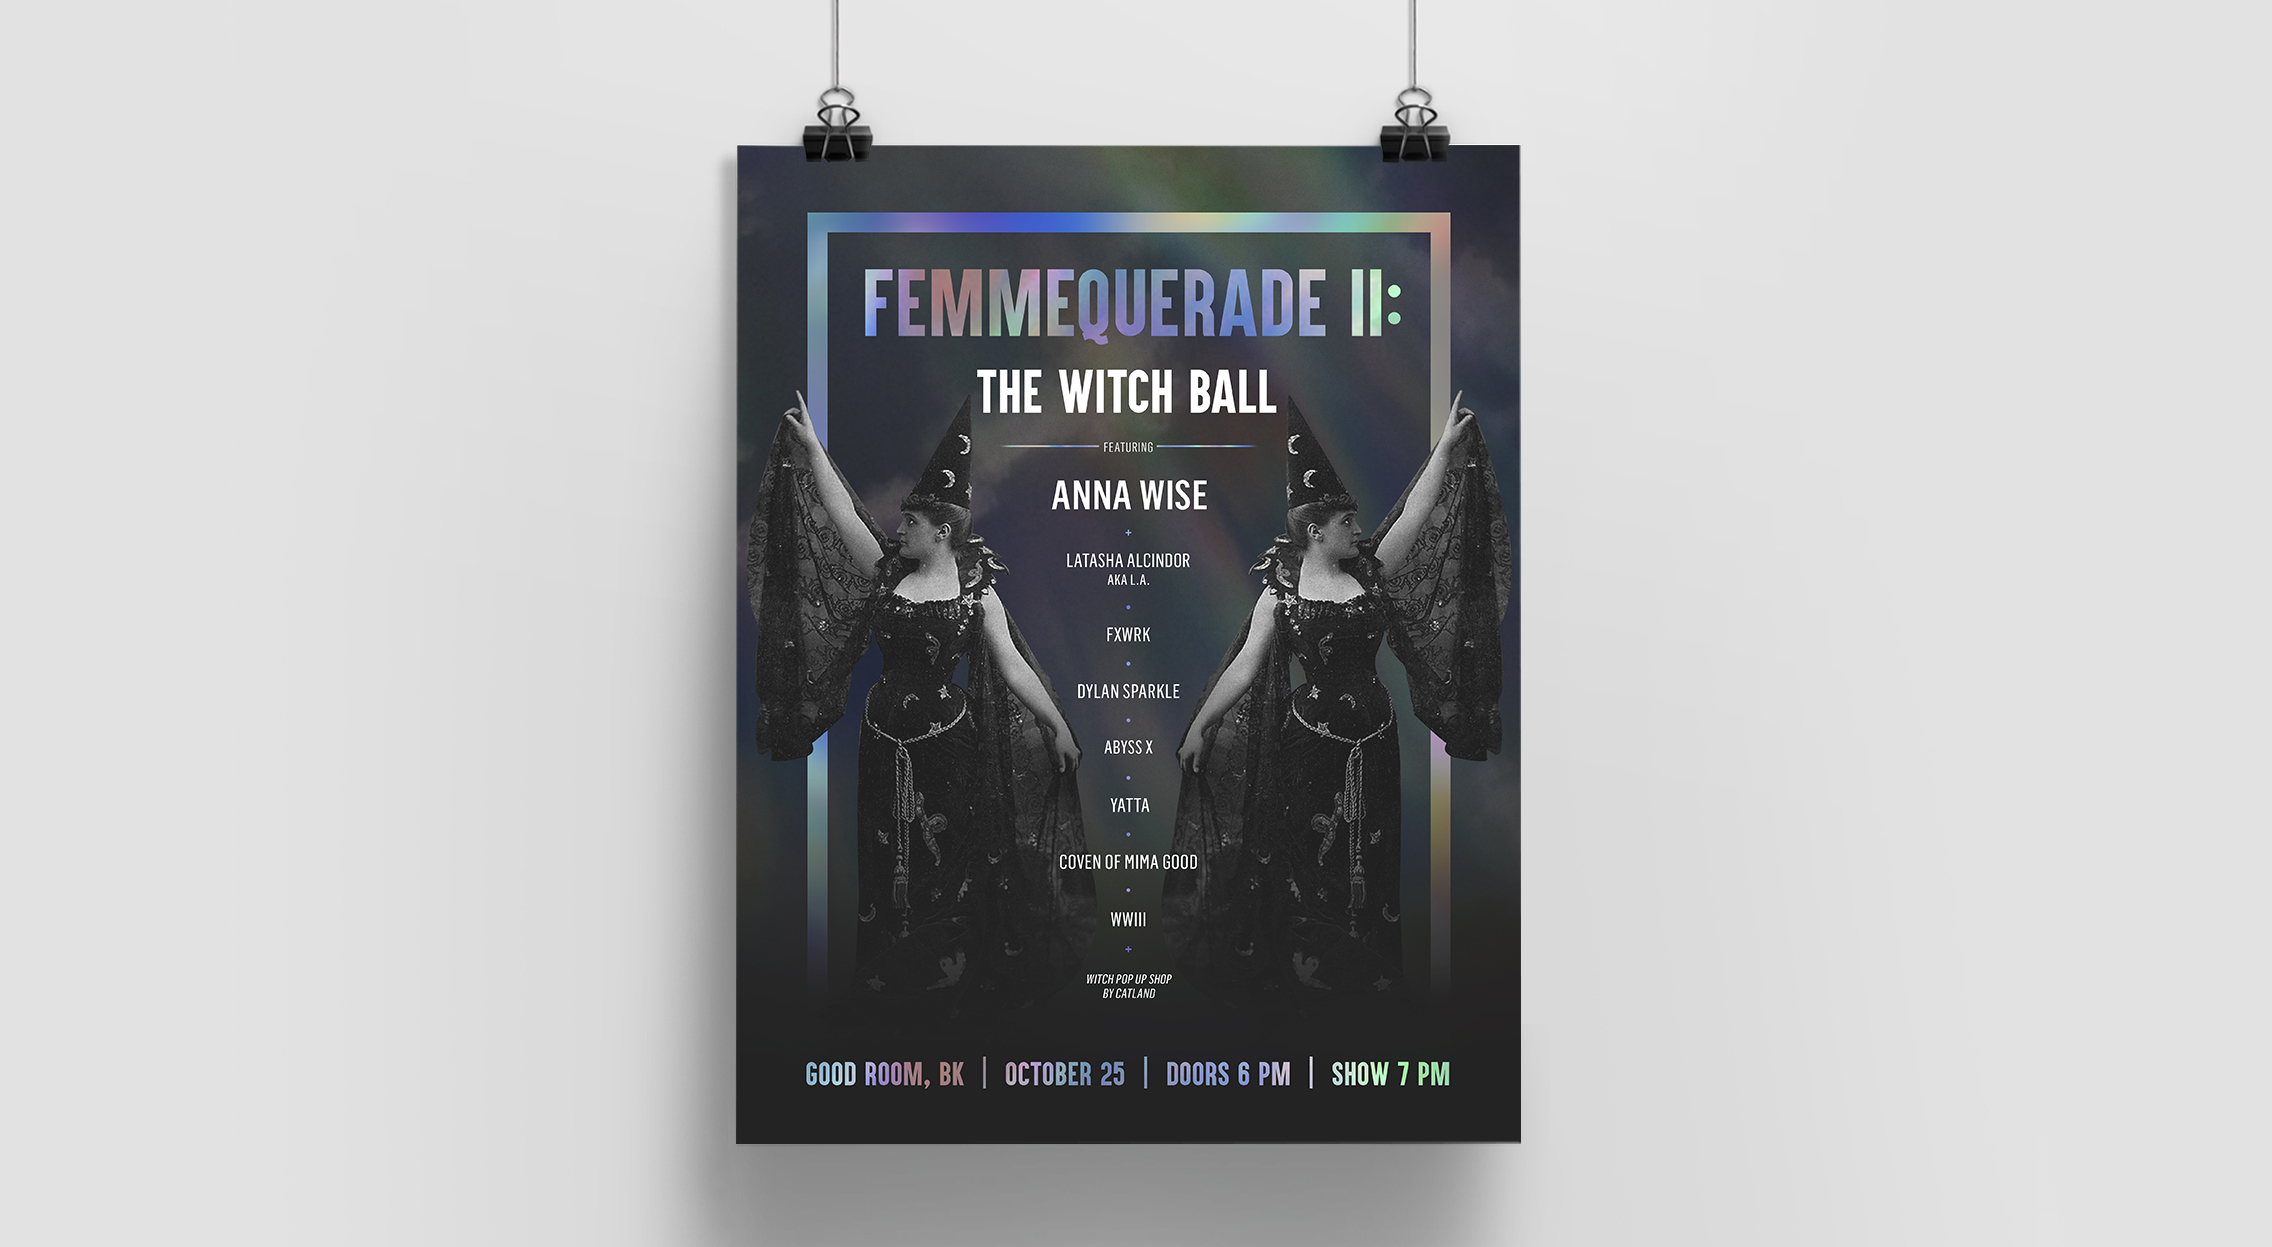 Poster for Femmequerade ii: The Witch Ball at Good Room, BK